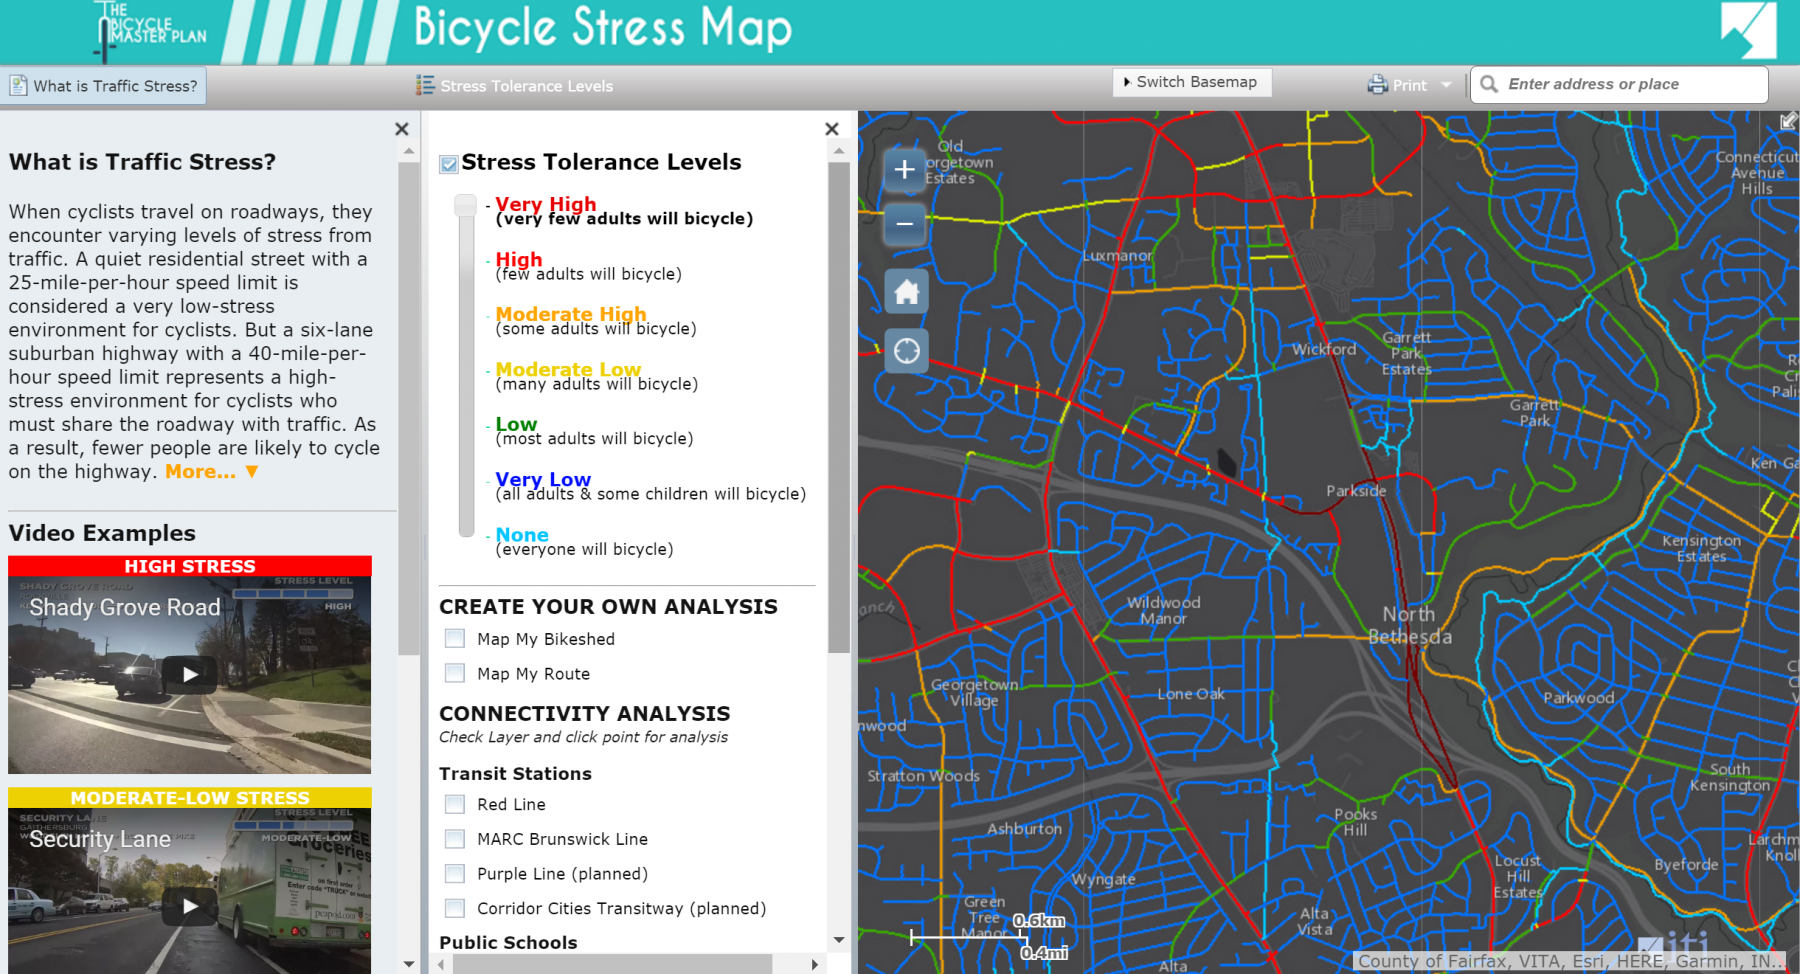 Bicycle Stress Map